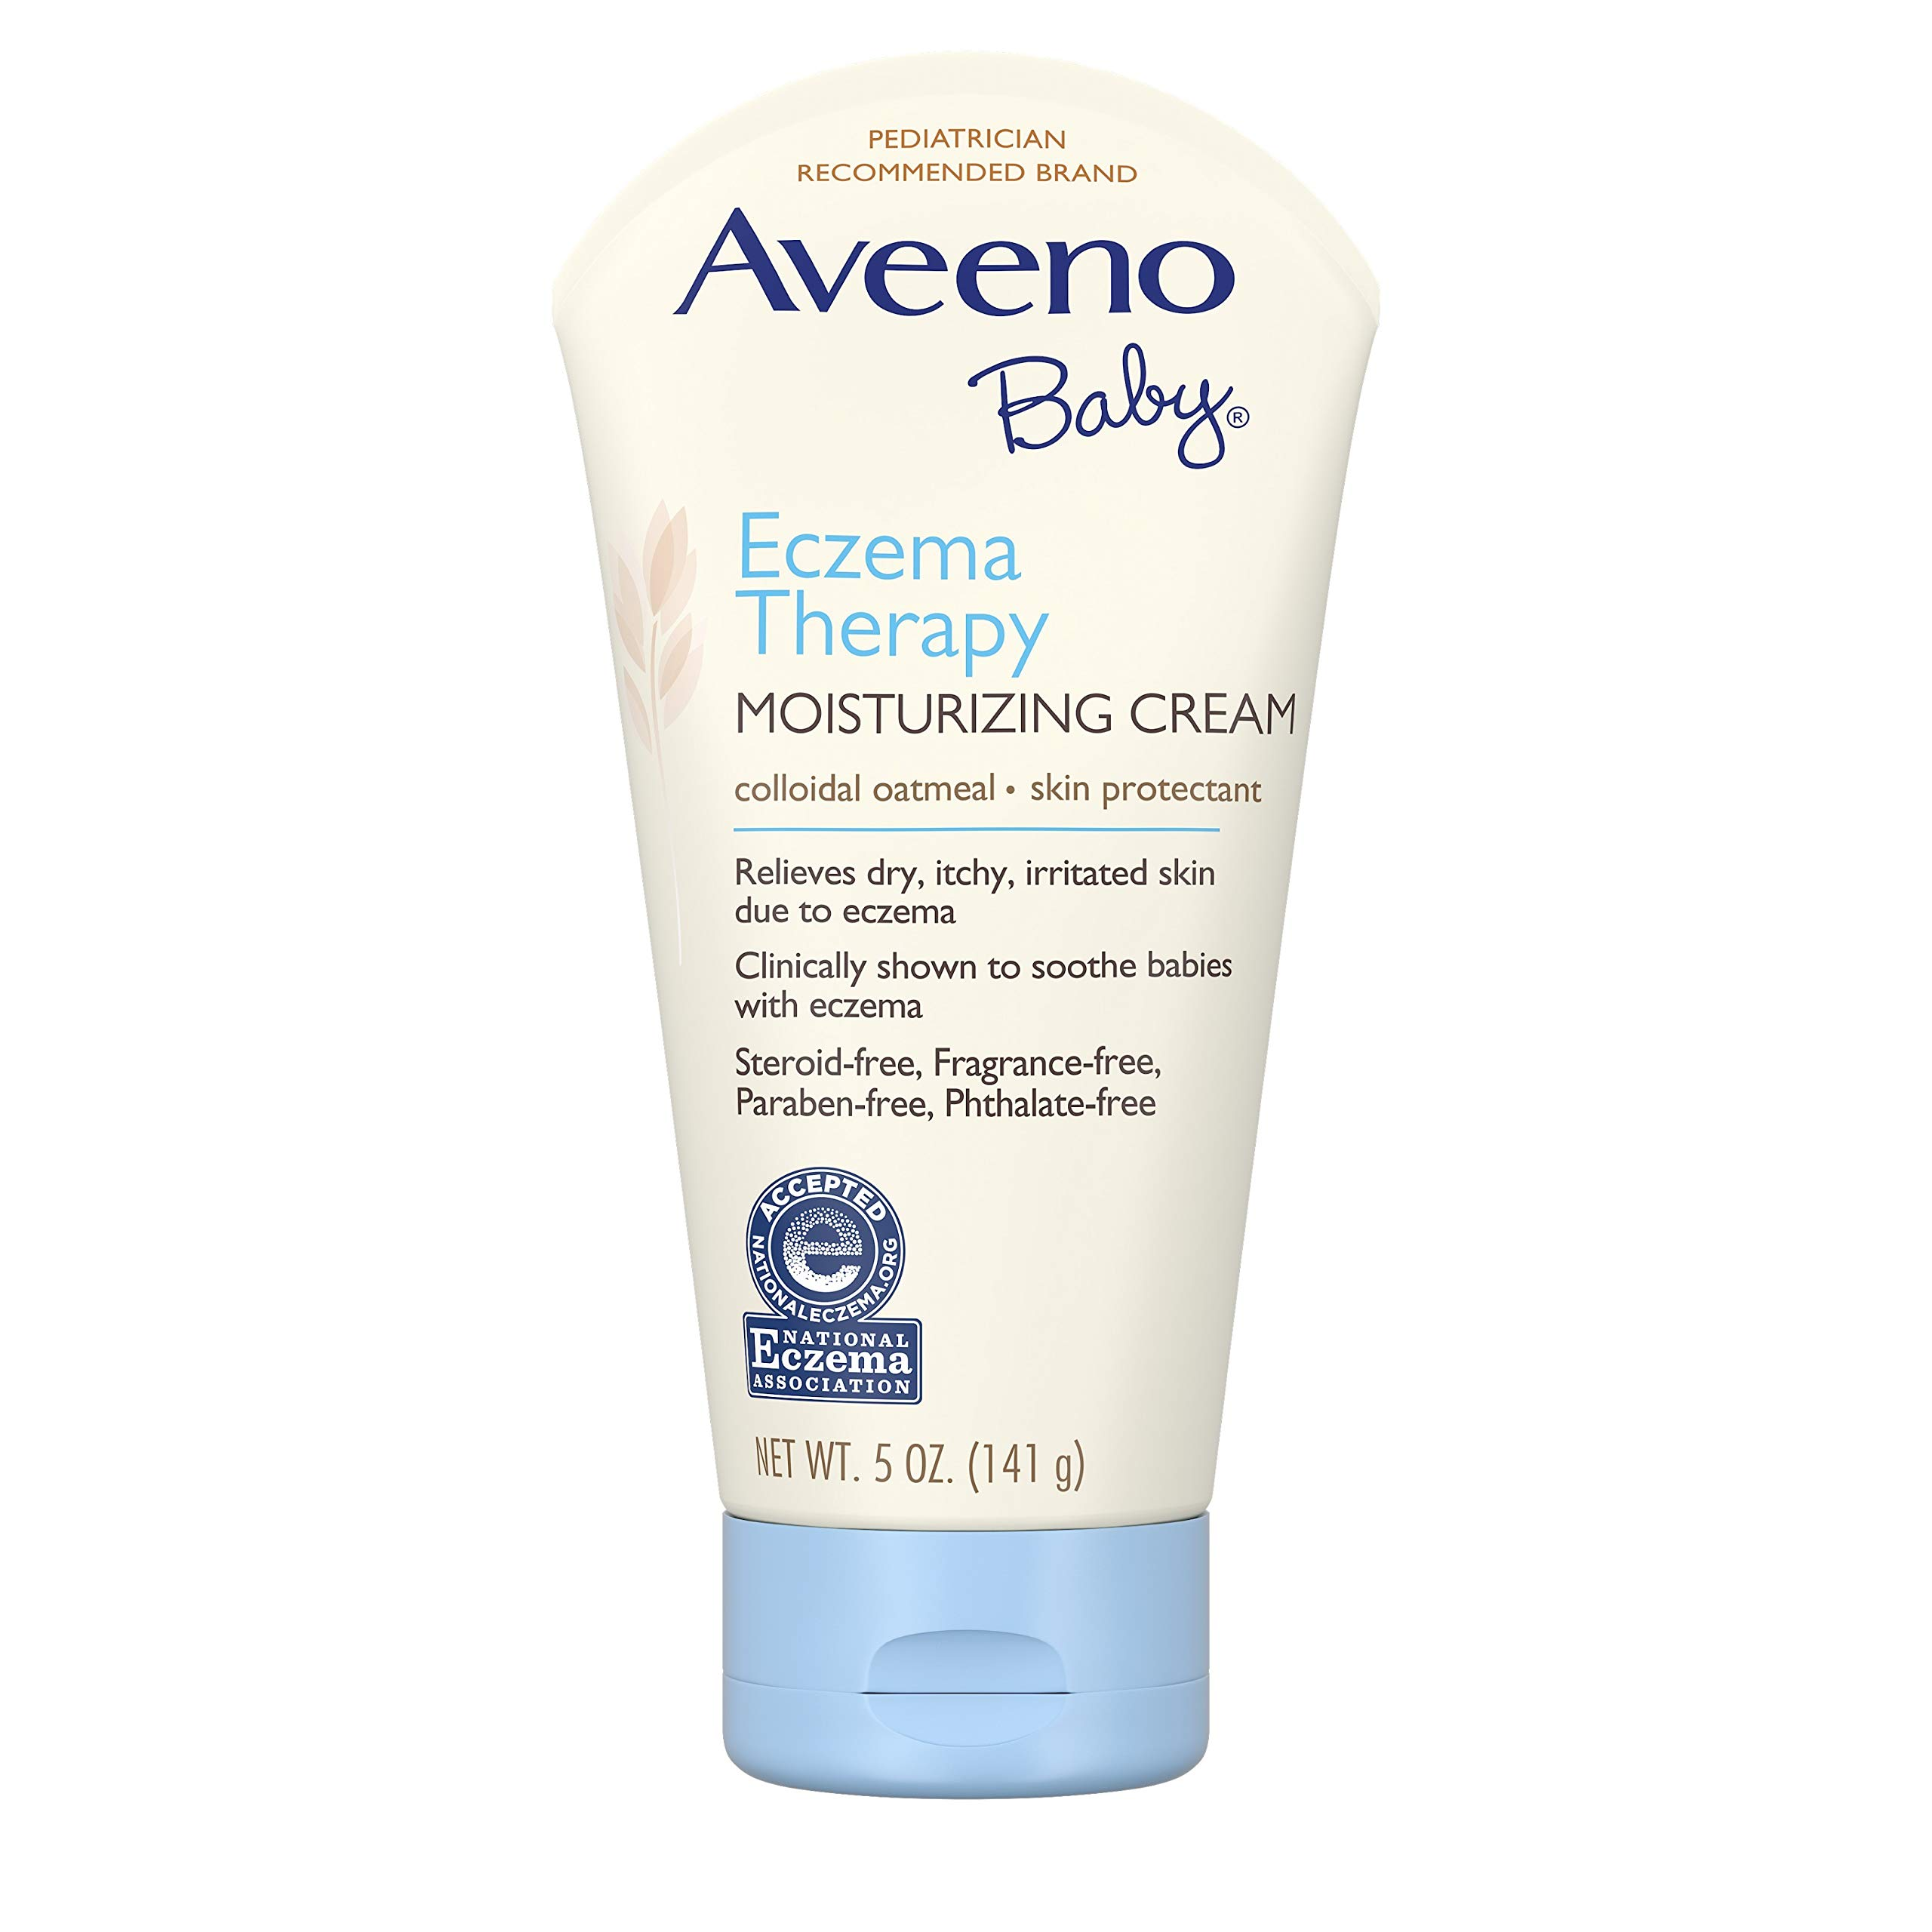 Aveeno Baby Eczema Therapy Moisturizing Cream with Natural Colloidal Oatmeal for Eczema Relief, 5 oz